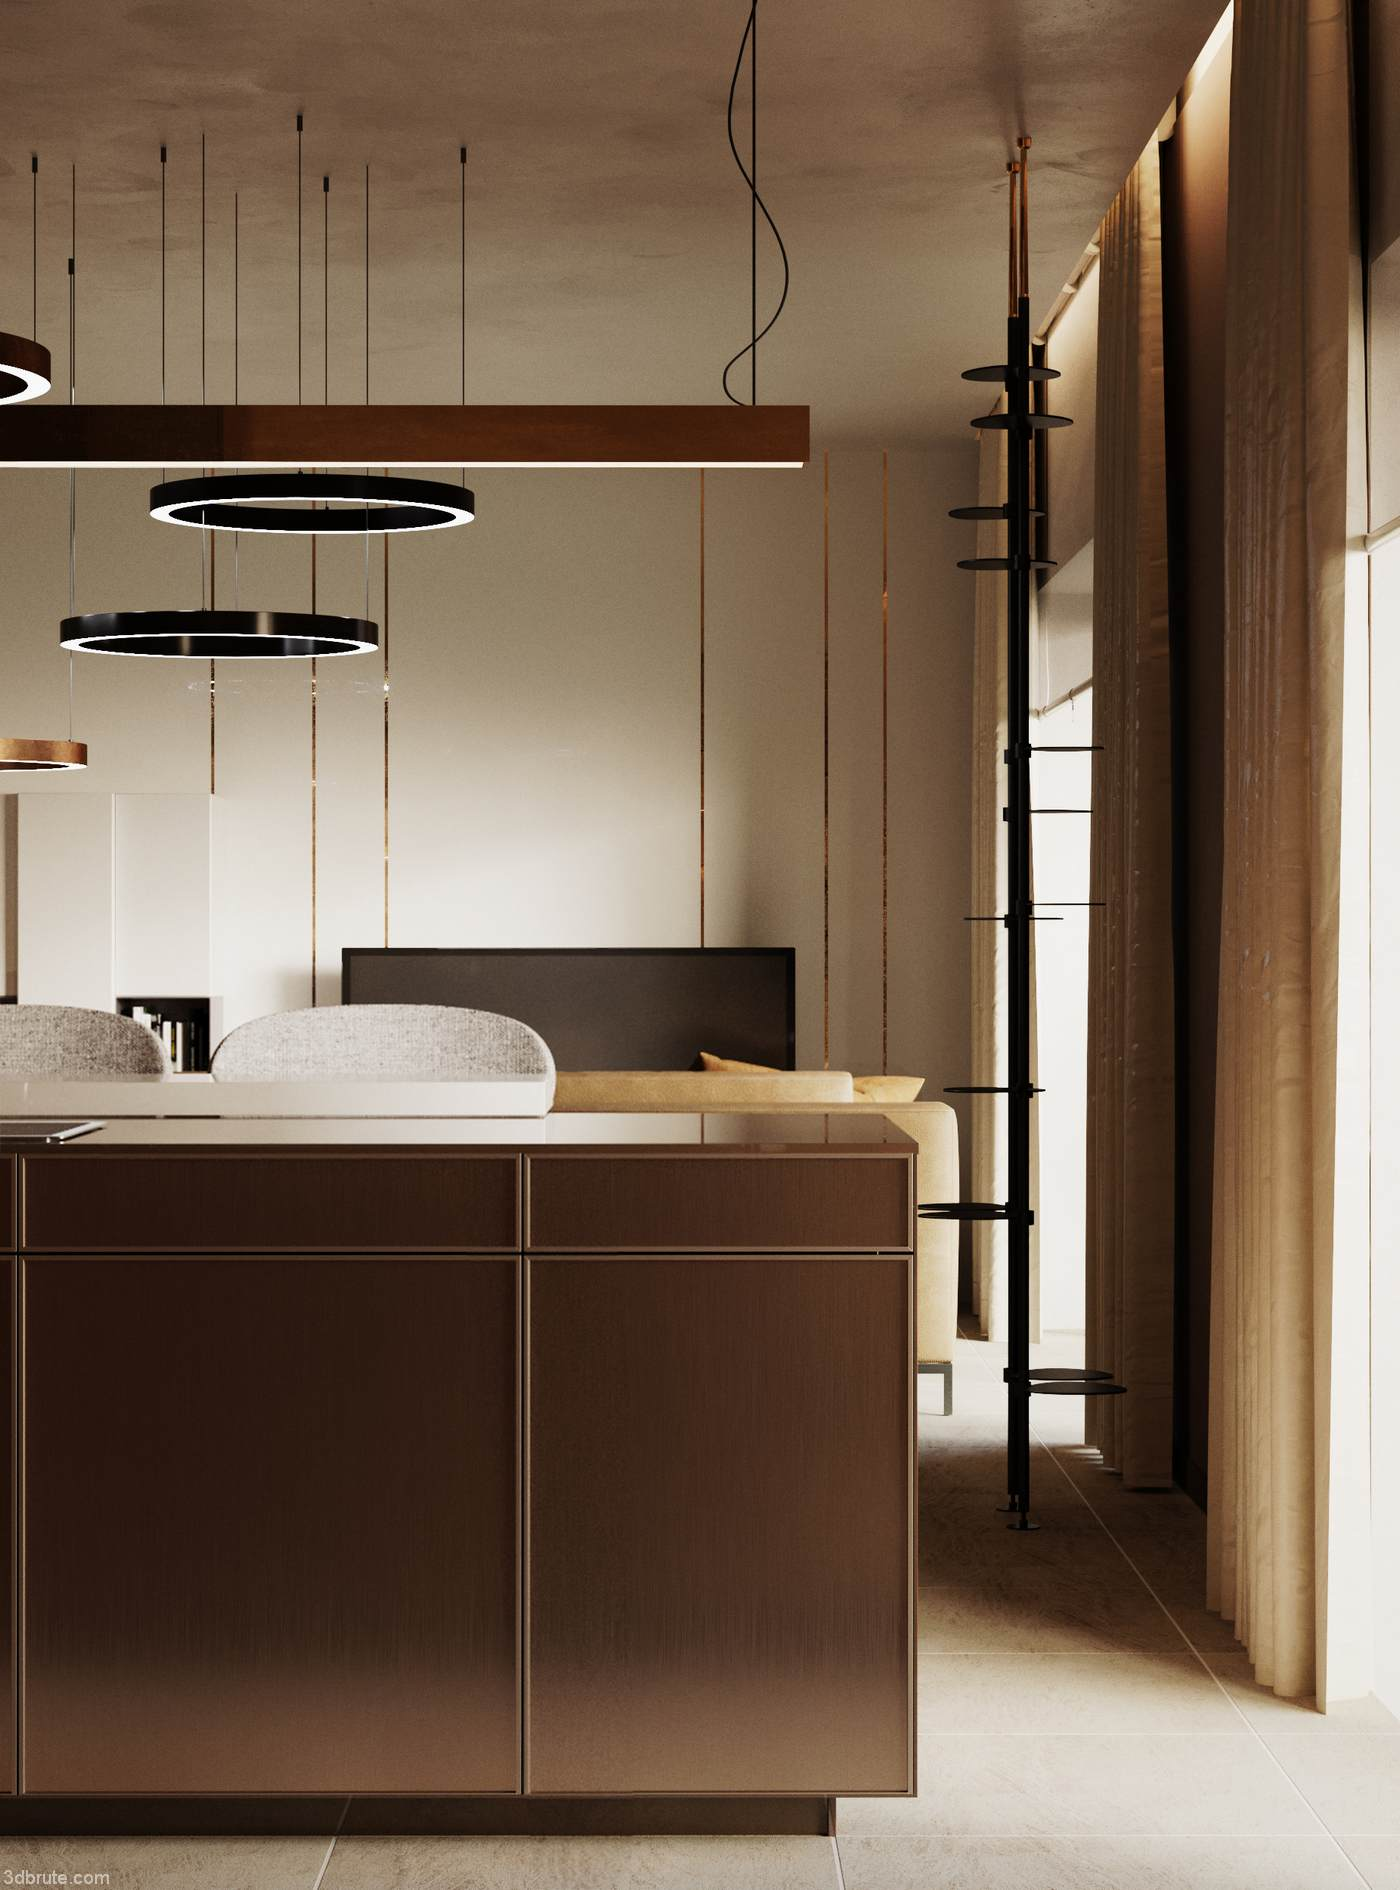 Project of apartments in Milan Milan interior design show ...